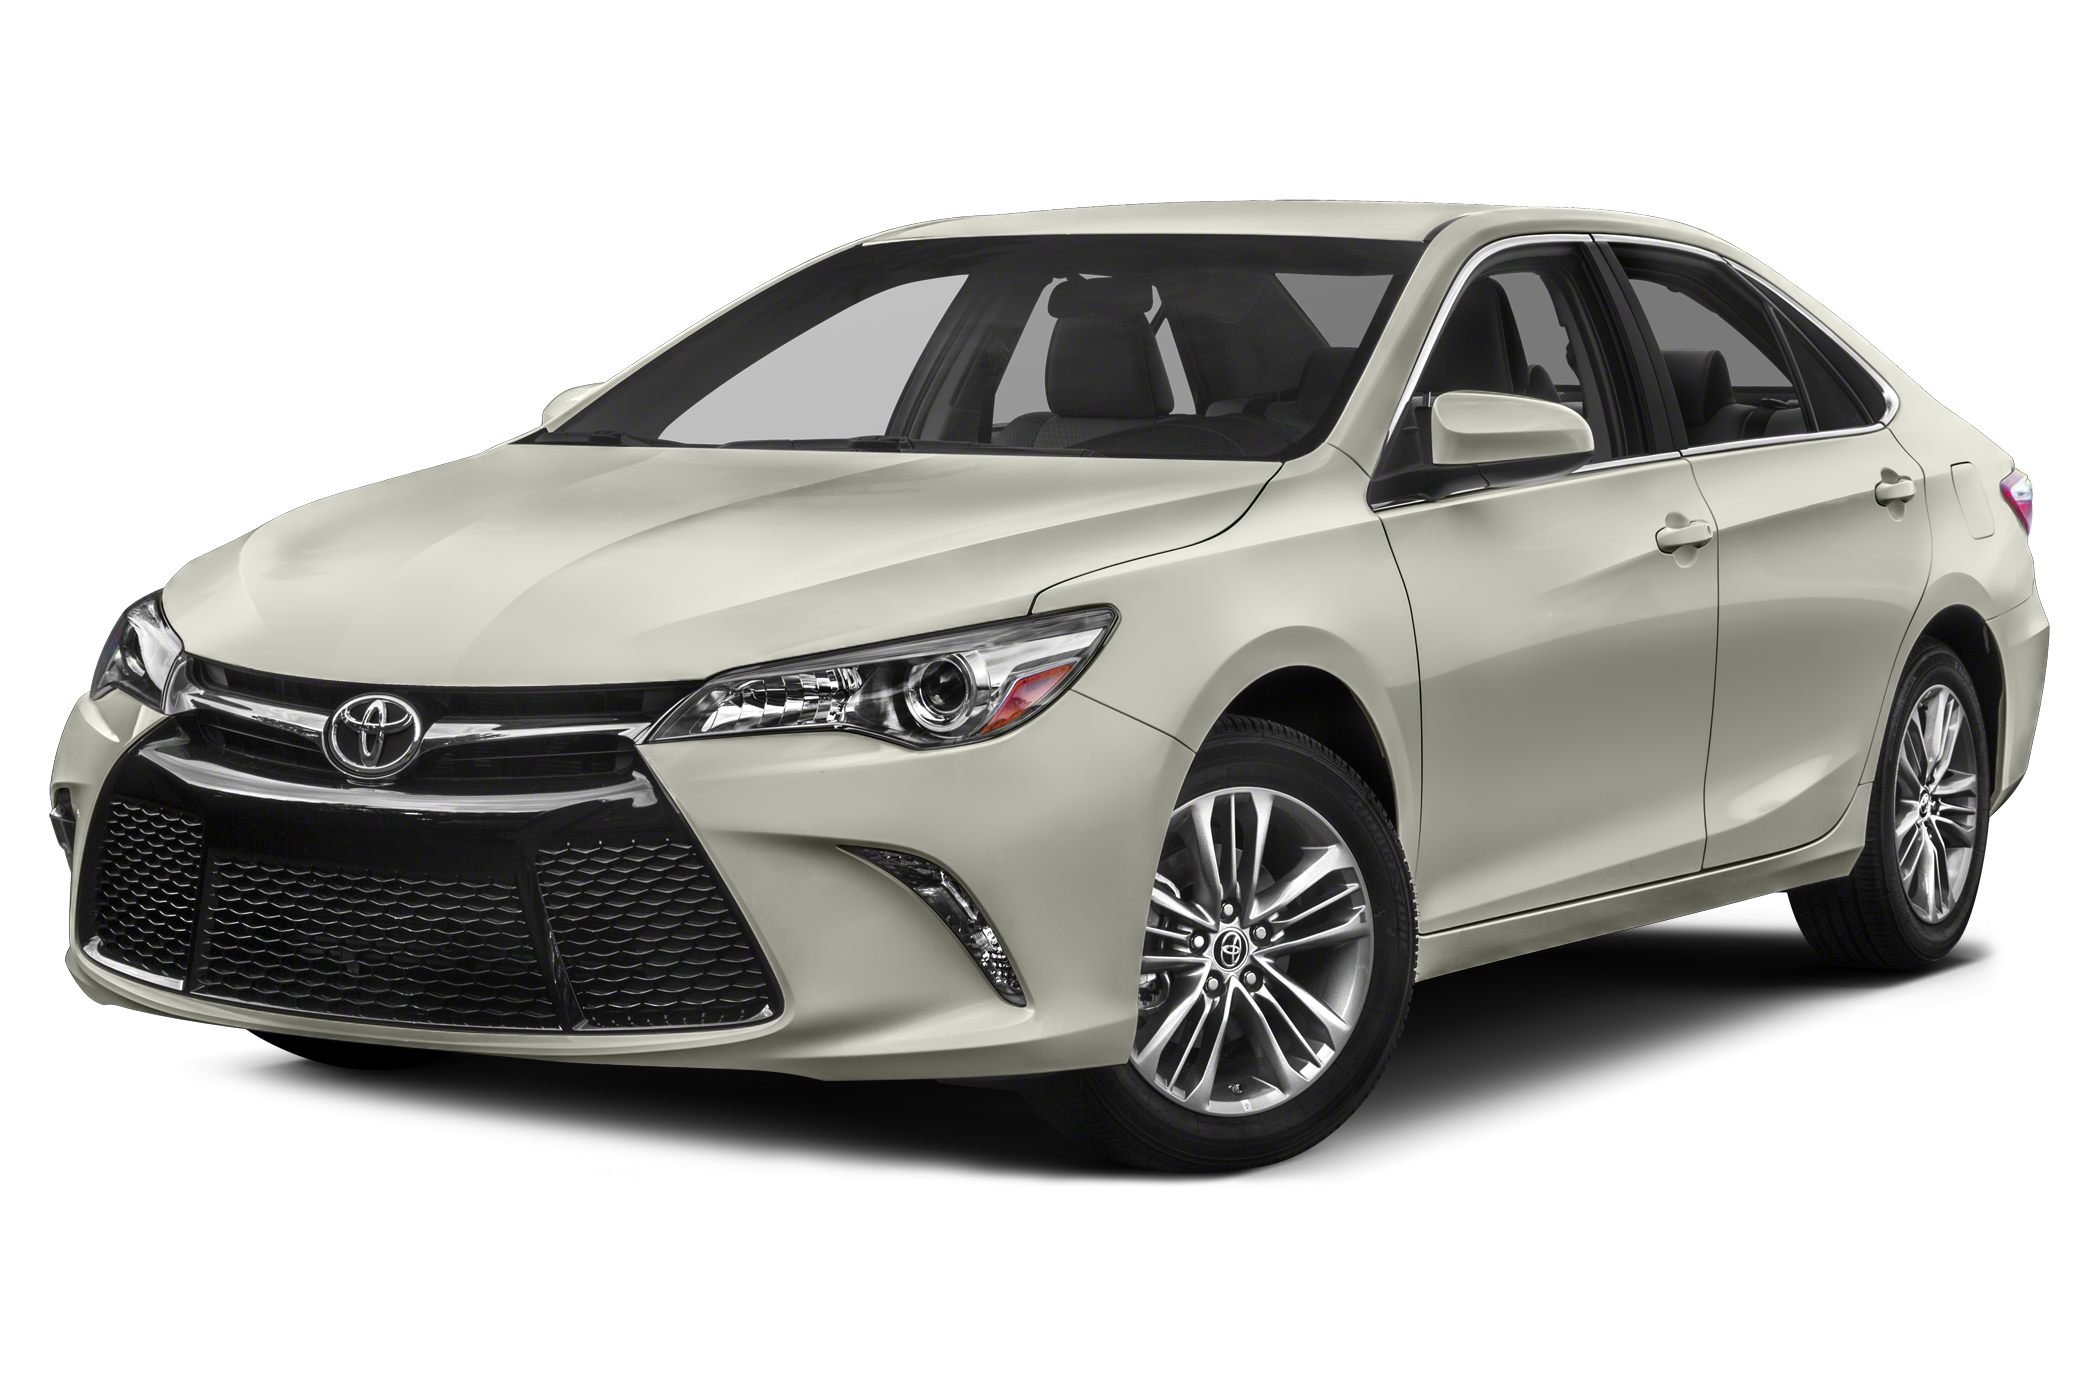 2015 Toyota Camry XSE Sedan for sale in Santa Rosa for $31,857 with 0 miles